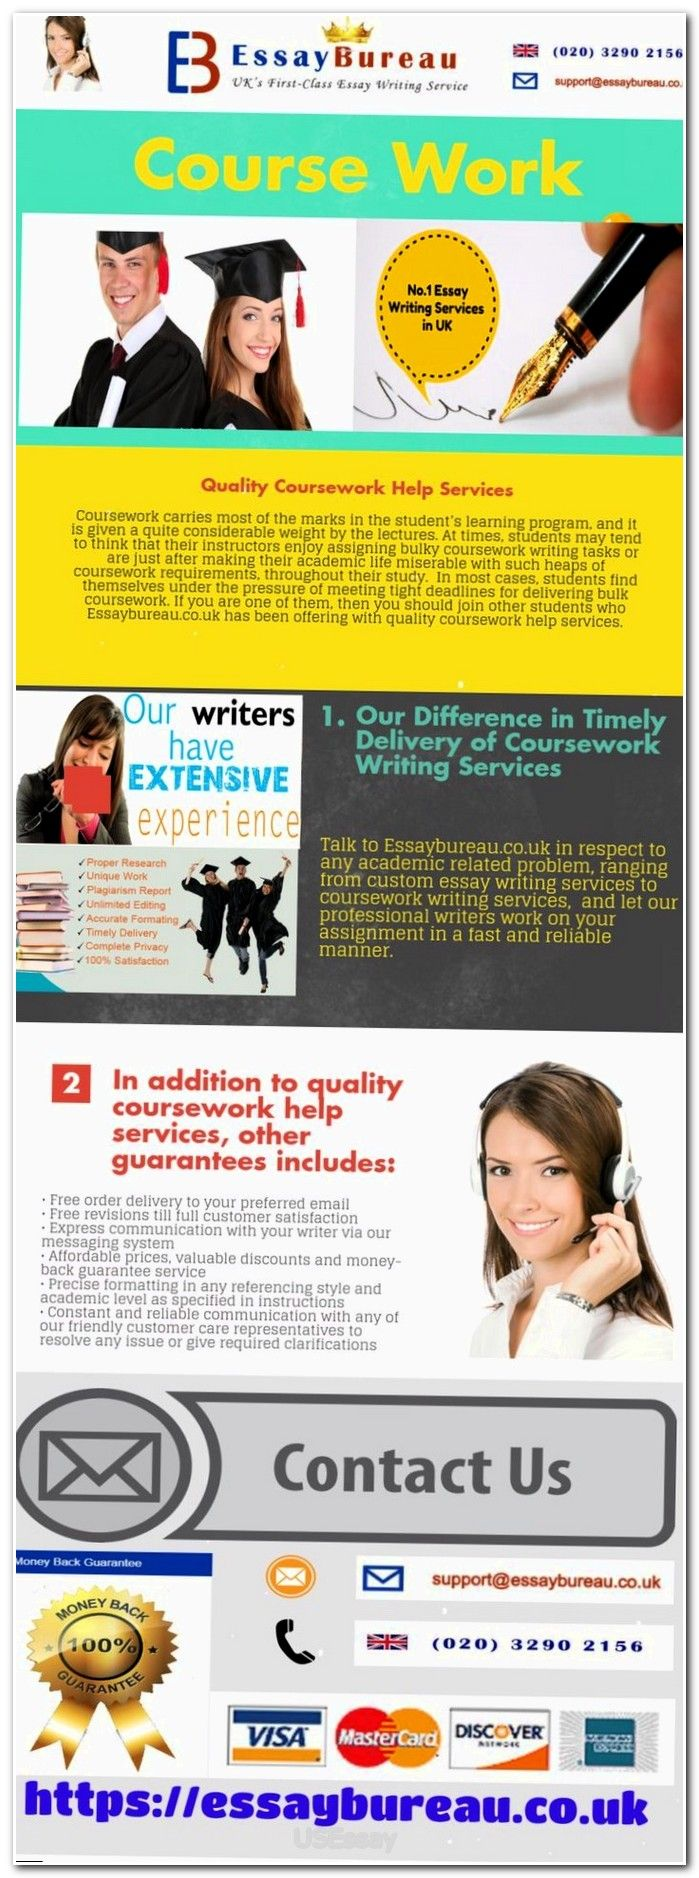 personal essay elements Using these elements in your essay will keep your reader engaged and help your essay to flow smoothly  to write a personal essay, start by deciding on an .